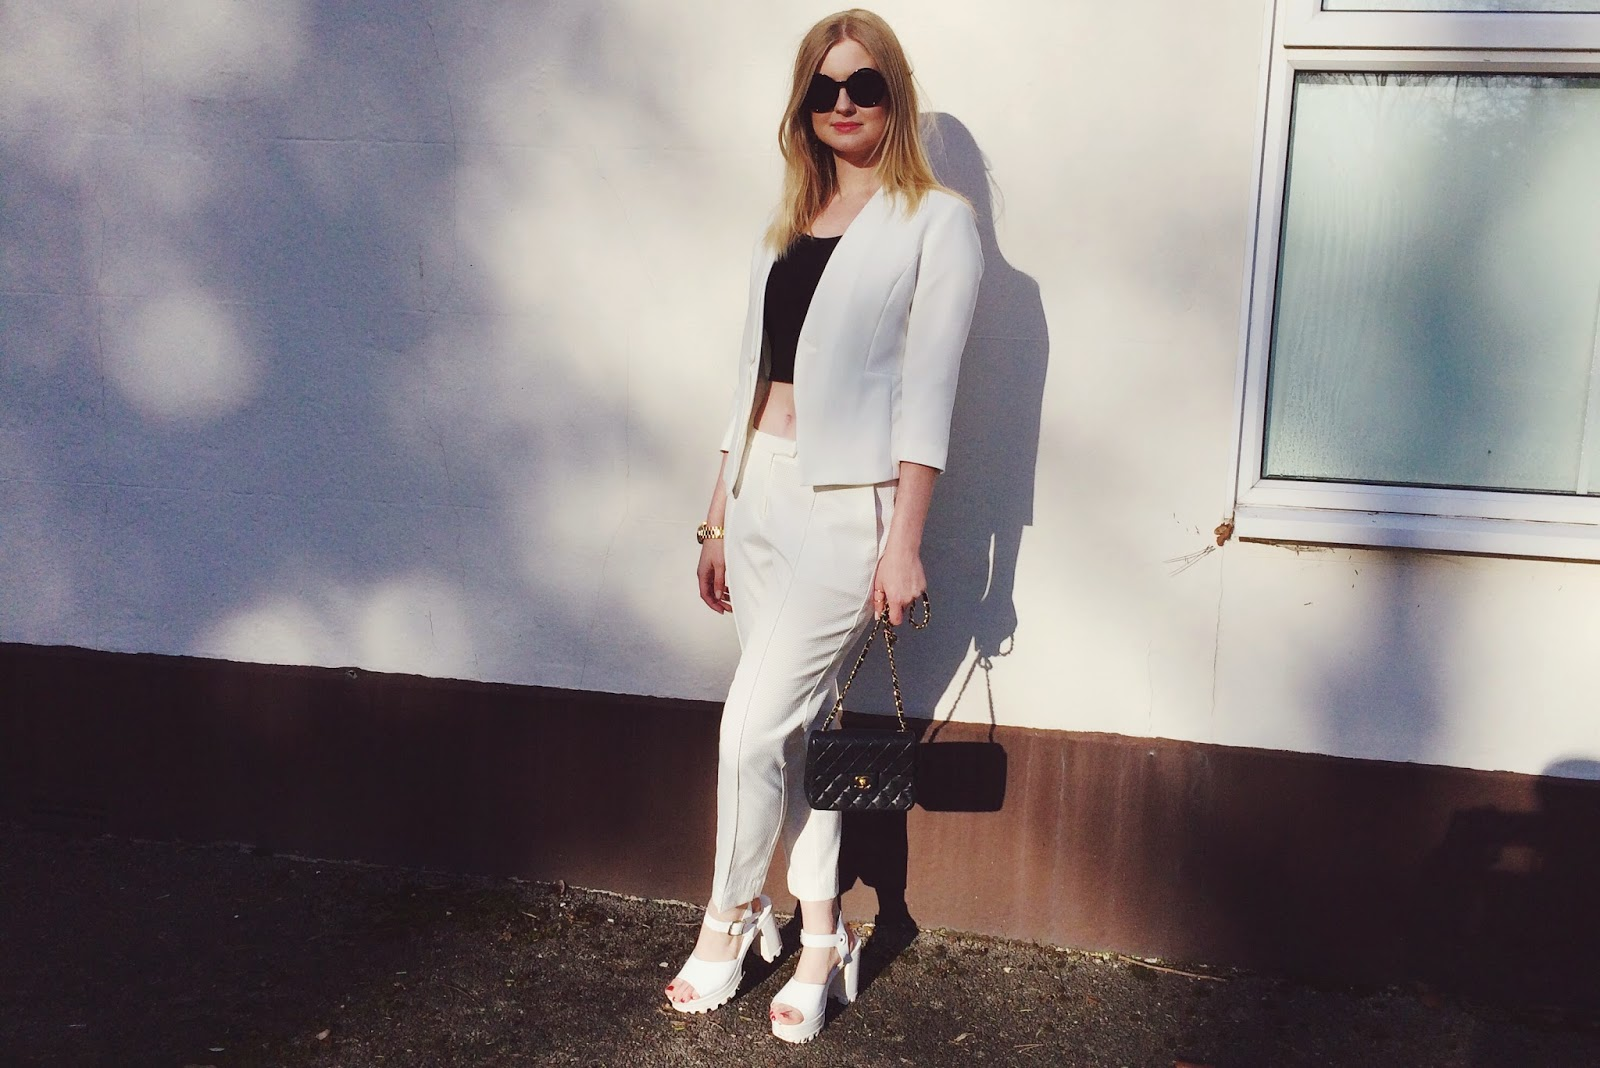 FashionFake, fashion bloggers, UK fashion blog, spring 2015 trends, spring 2015 all white